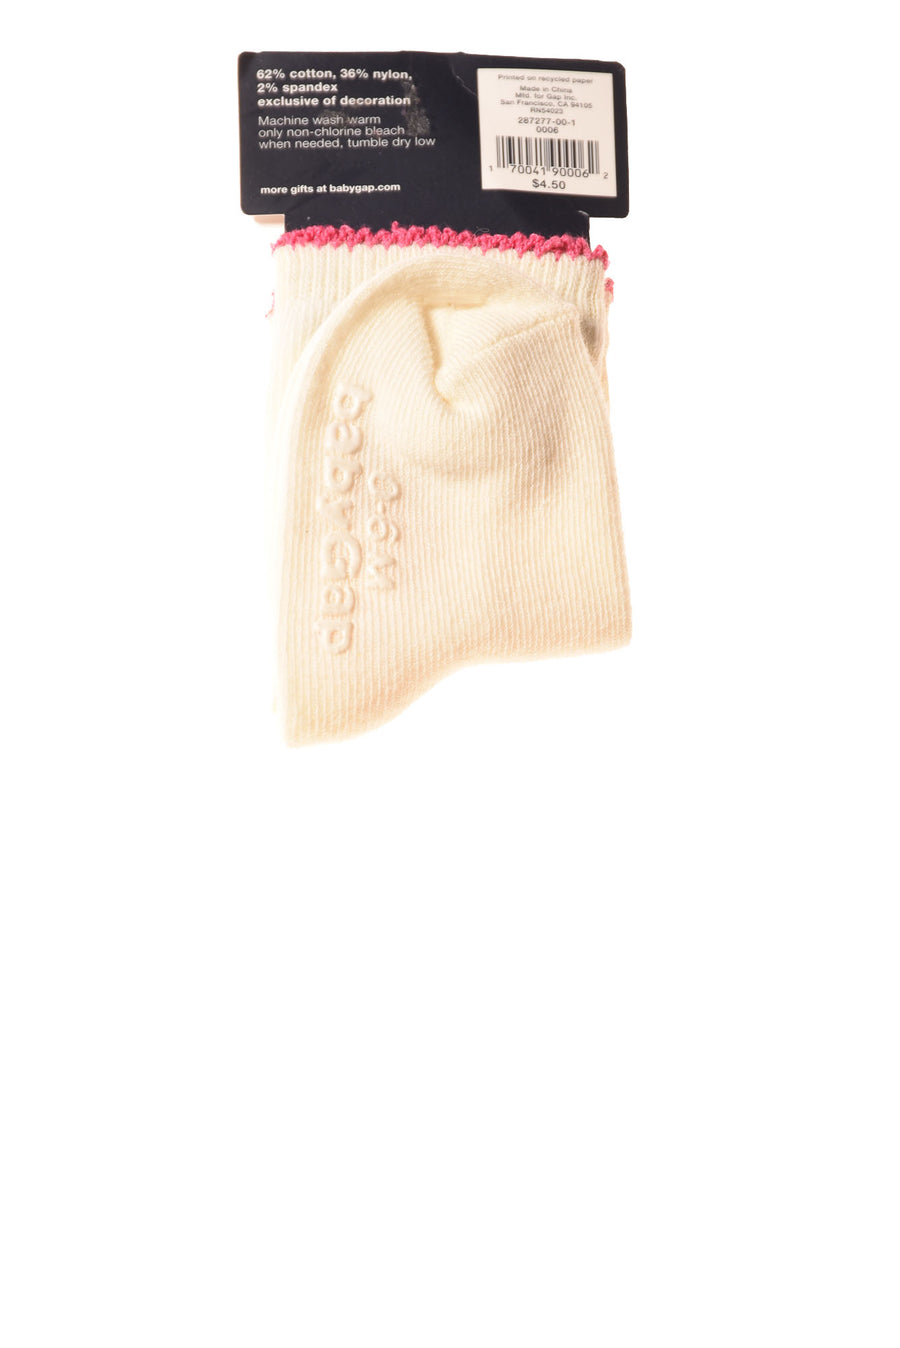 Baby Girl Socks By Baby Gap